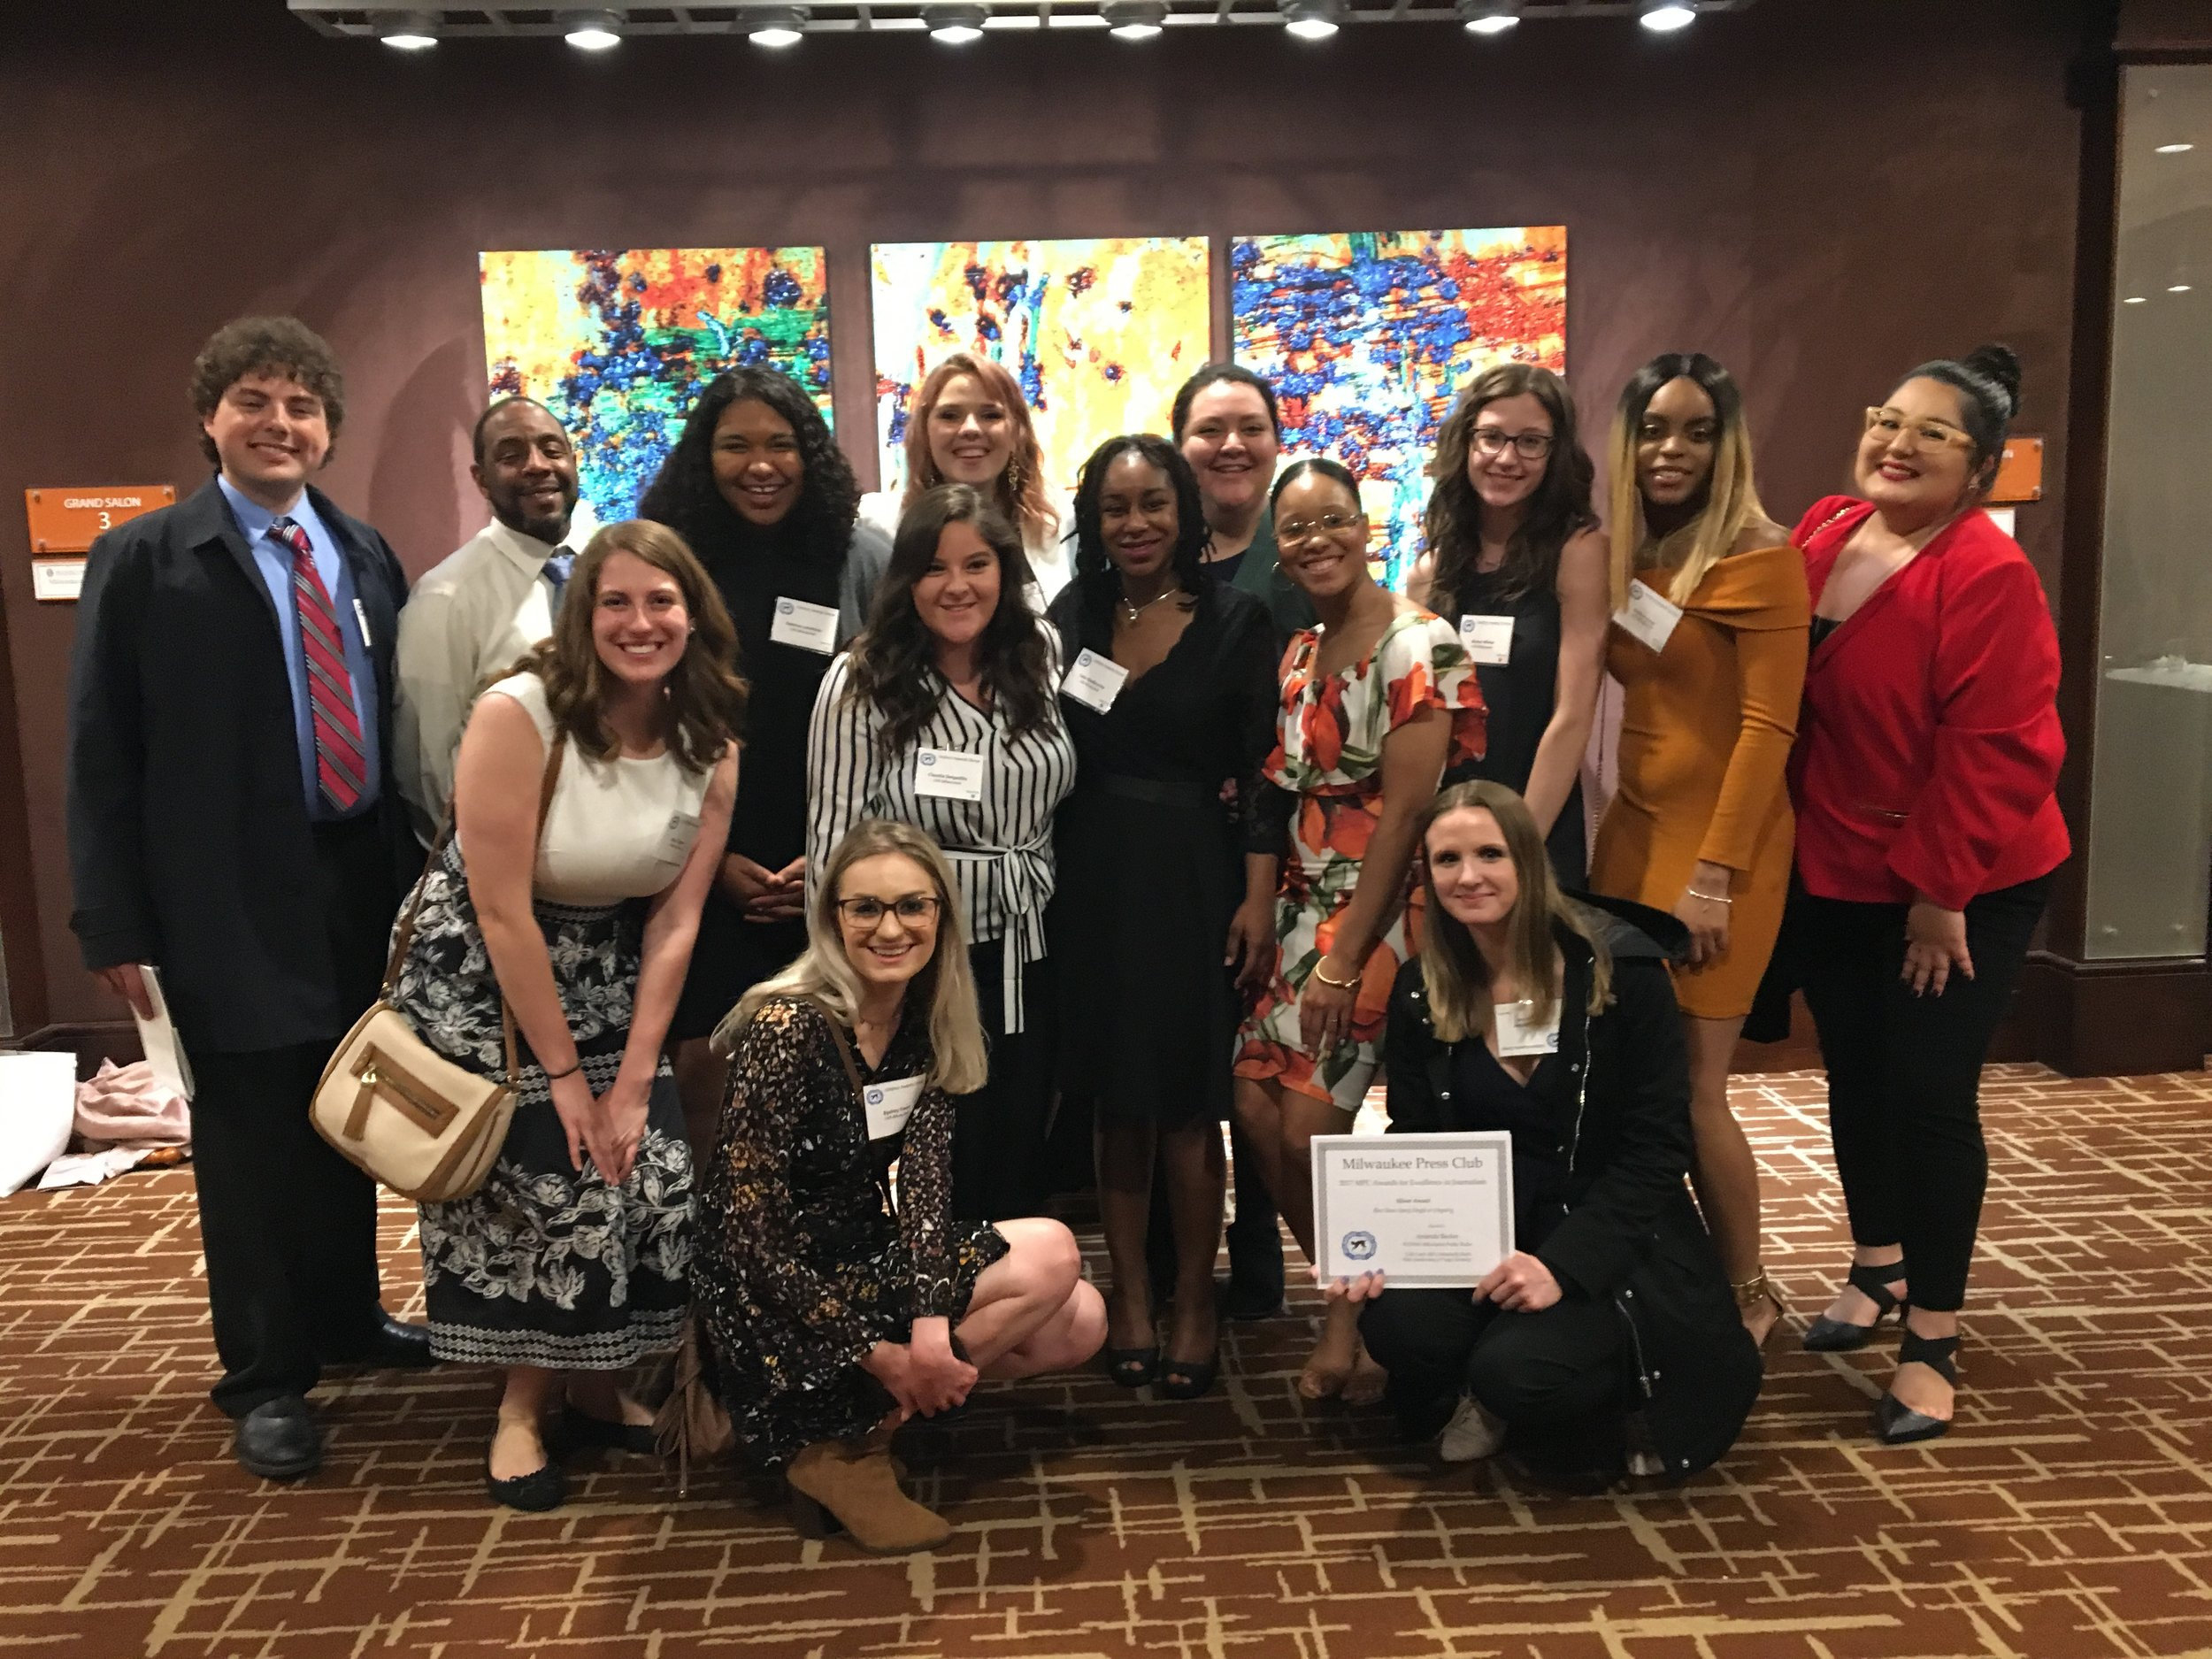 University of Wisconsin-Milwaukee student journalists and award winners at the Milwaukee Press Club Gridiron Dinner, May 2018. (Honorees: Jodi Kantor and Megan Twohey, New York Times)